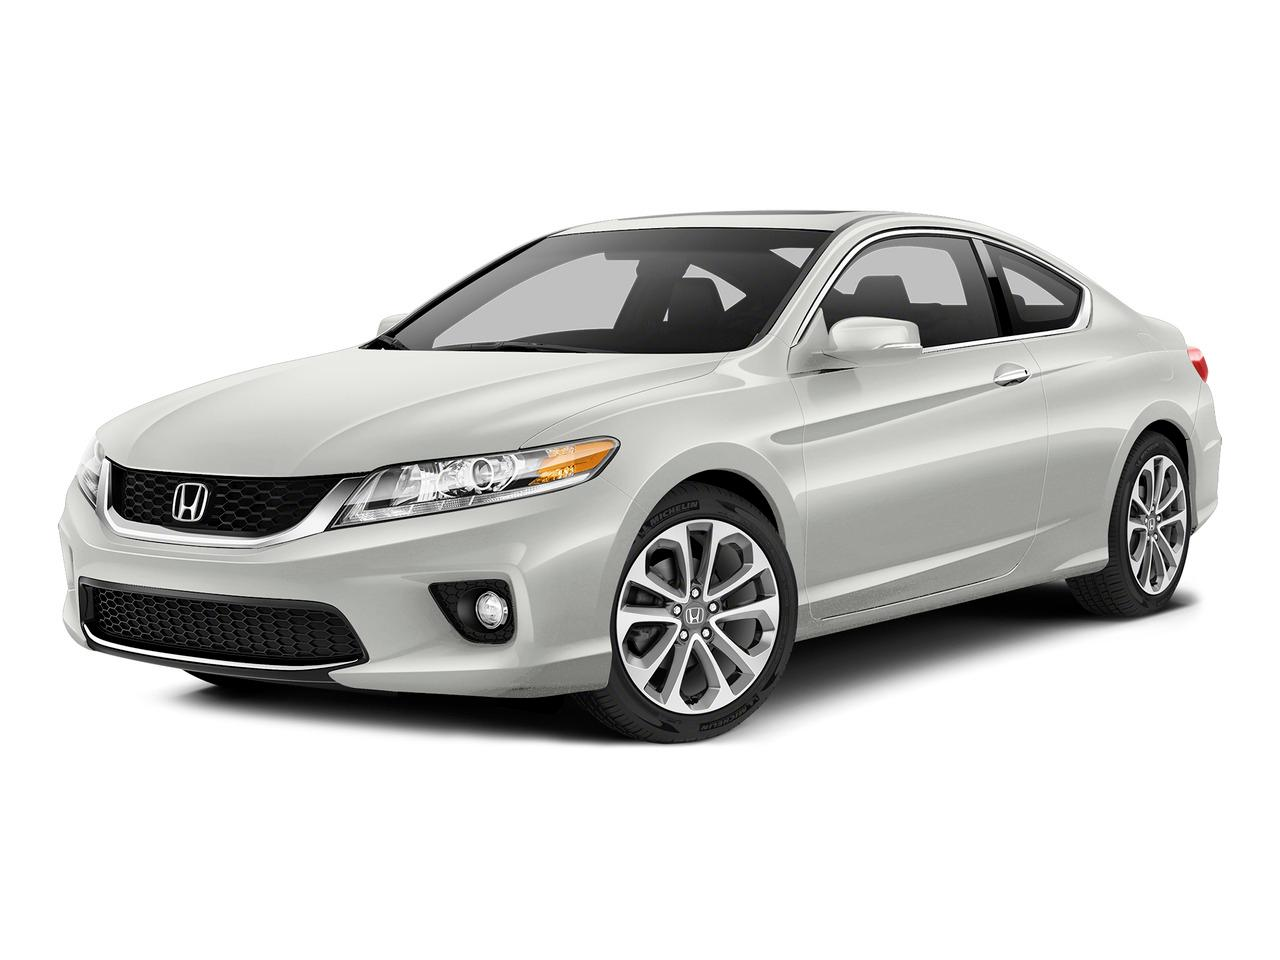 2015 Honda Accord Coupe Vehicle Photo in King George, VA 22485